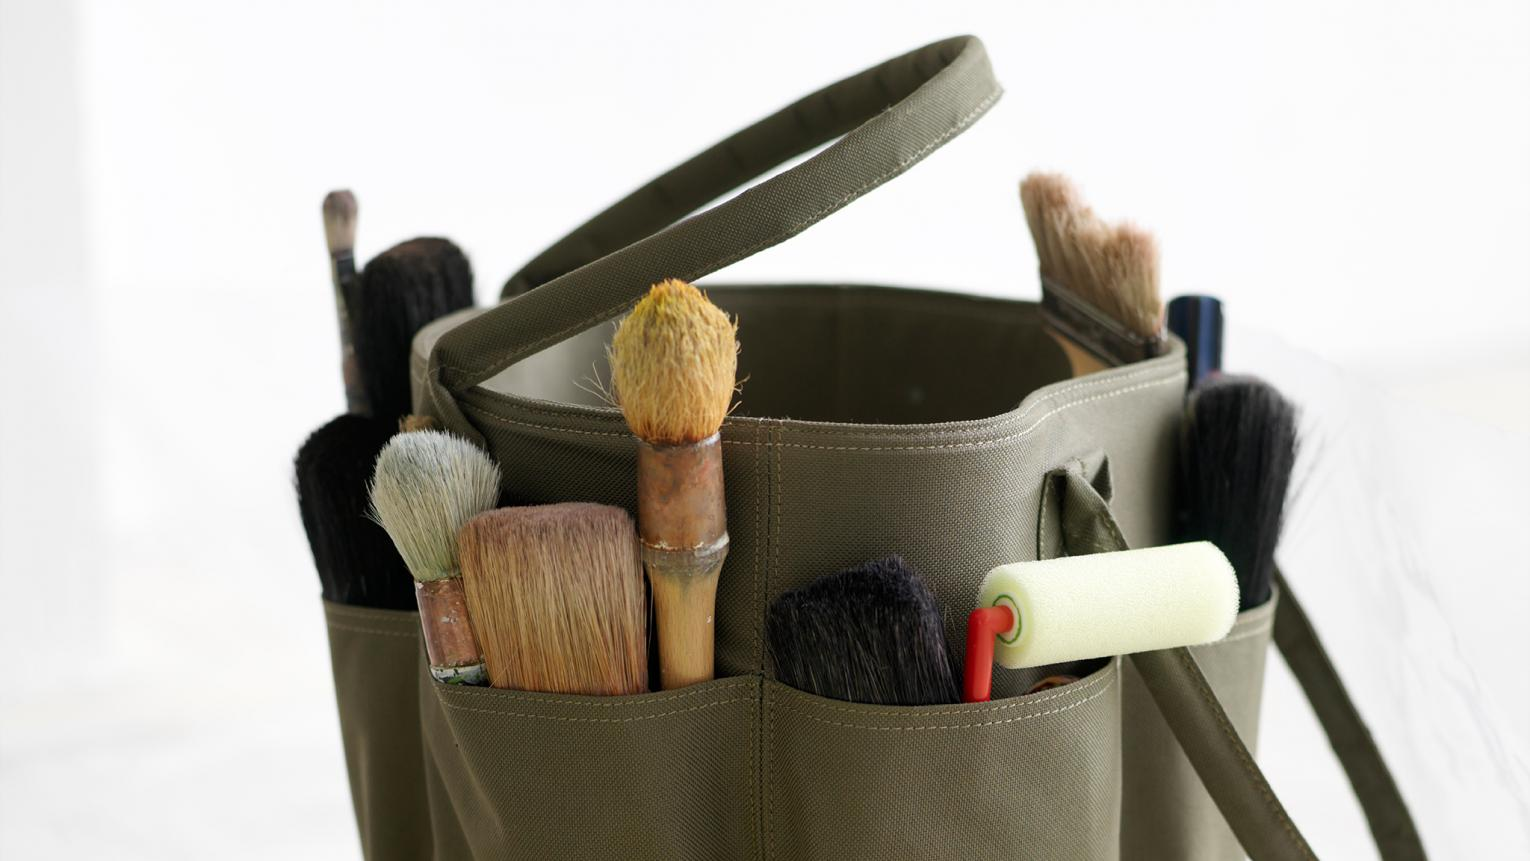 Buying the right tools for a paint project can make the job efficient and reduce waste.